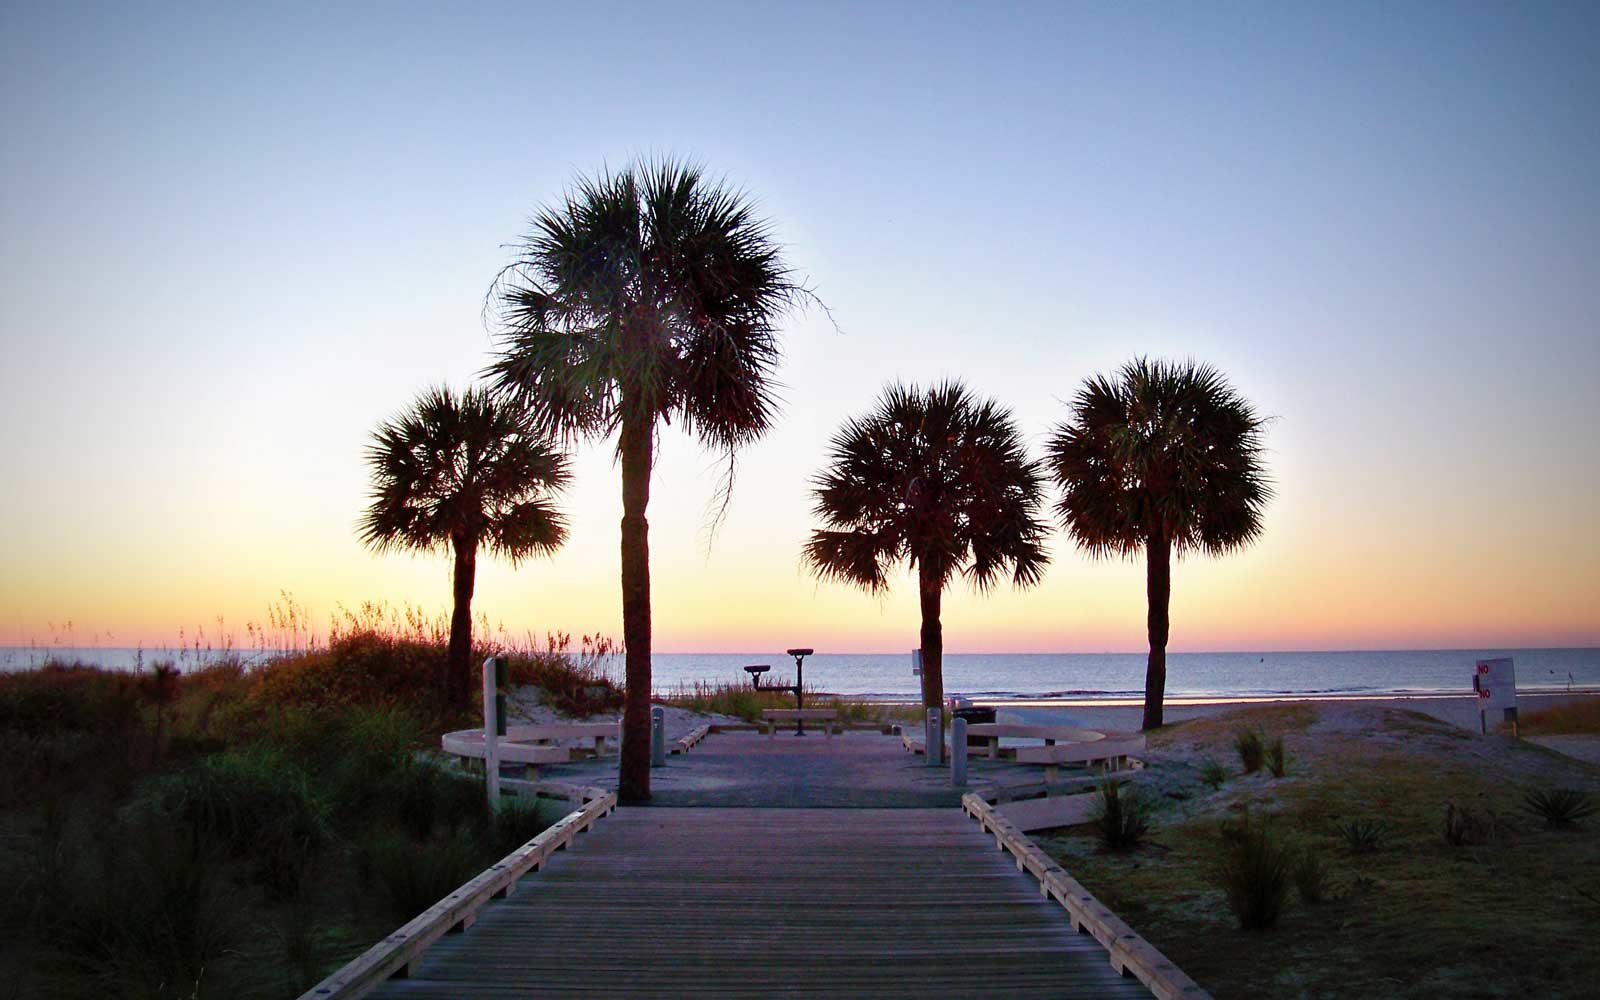 Sunrise at Hilton Head Boardwalk, SC